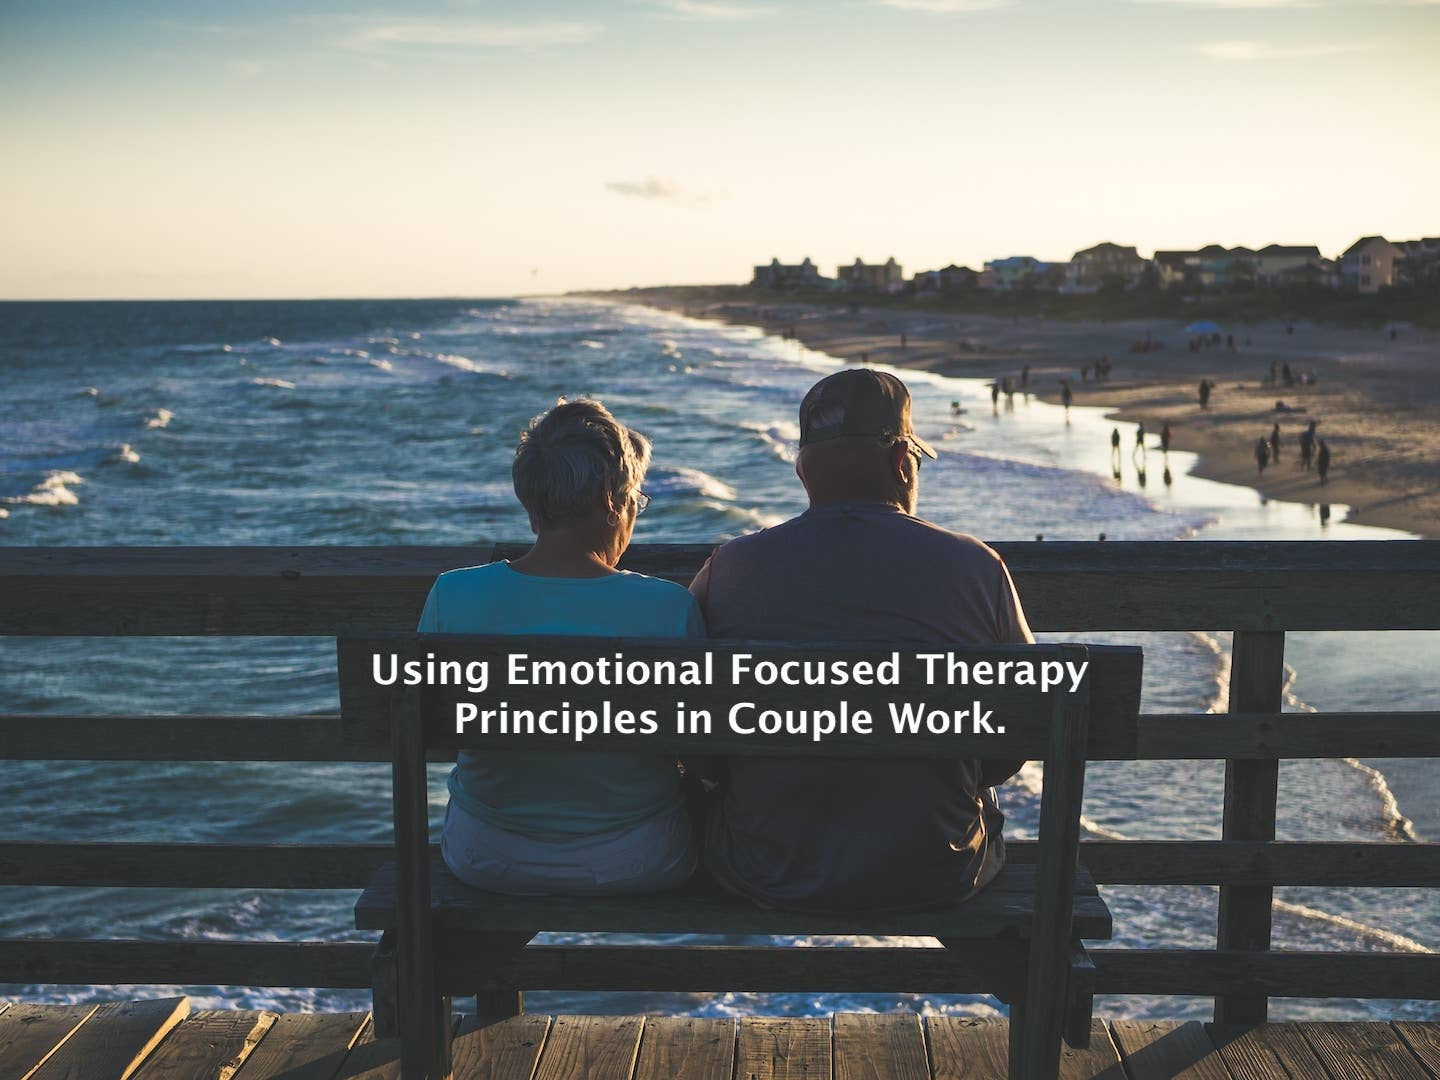 Mini Series Part 3 of 12 - Using Emotional Focused Therapy Principles in Couple Work.